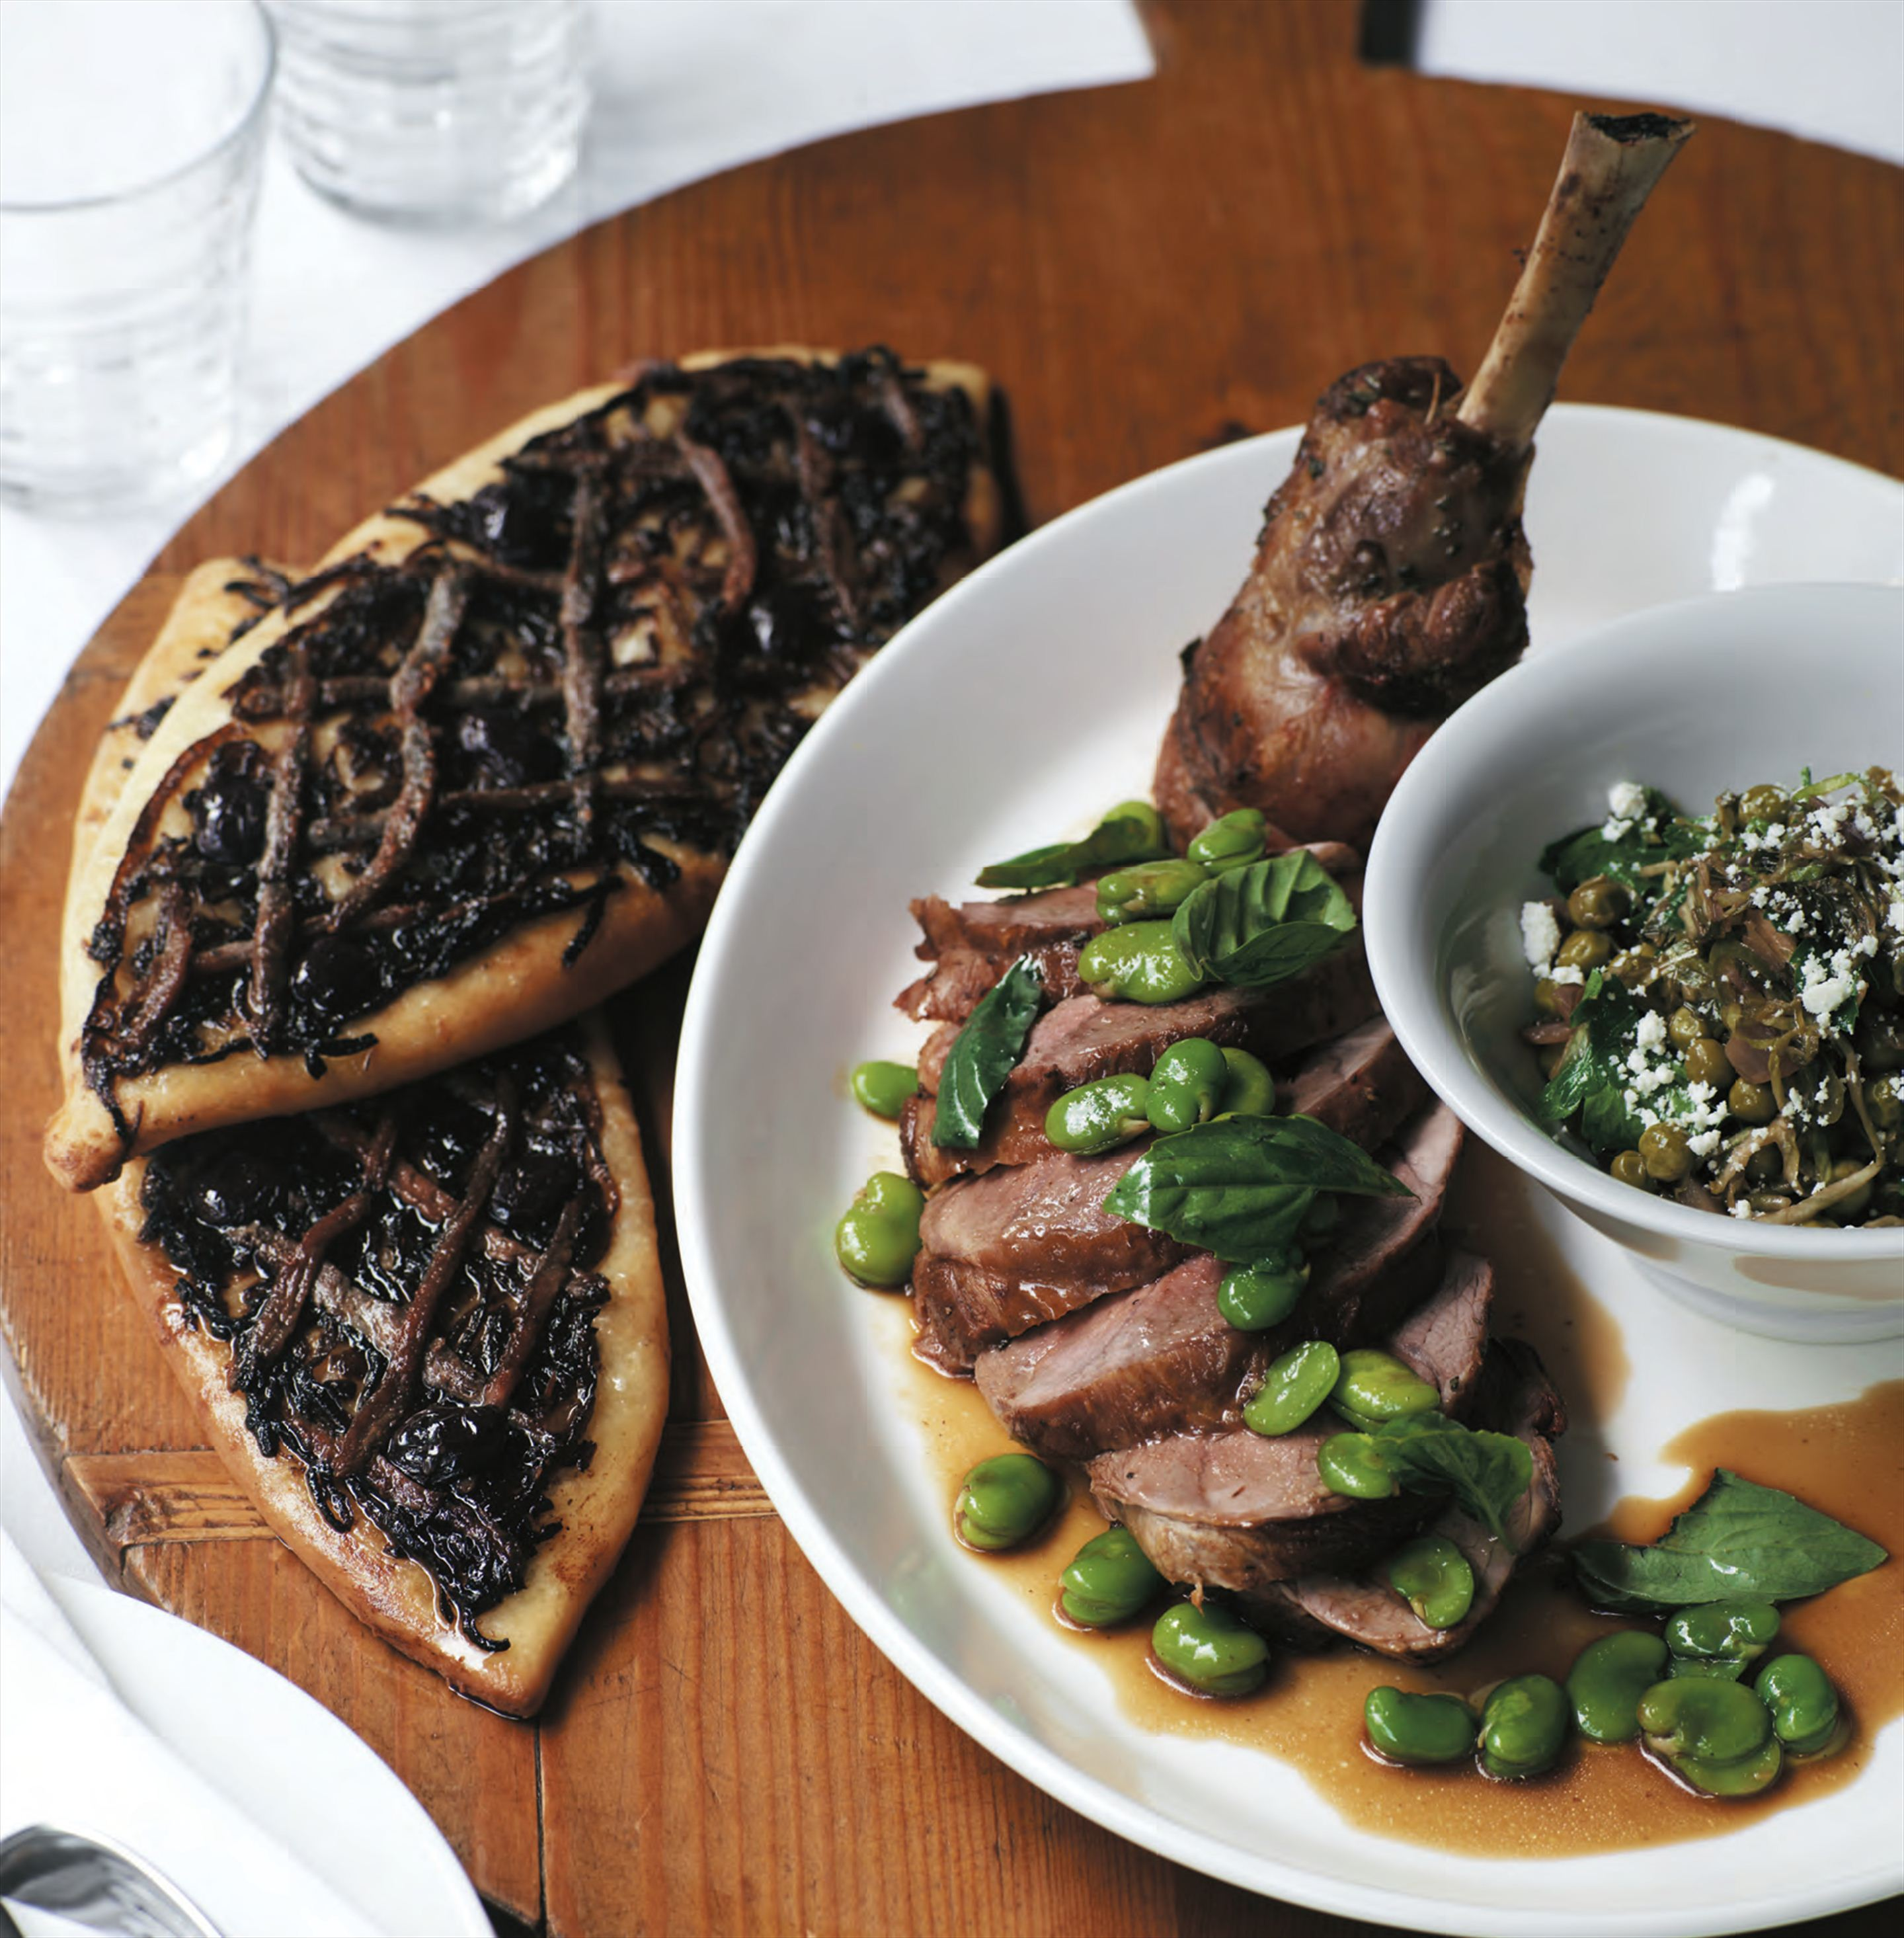 Roasted milk-fed leg of lamb with pissaladière tart